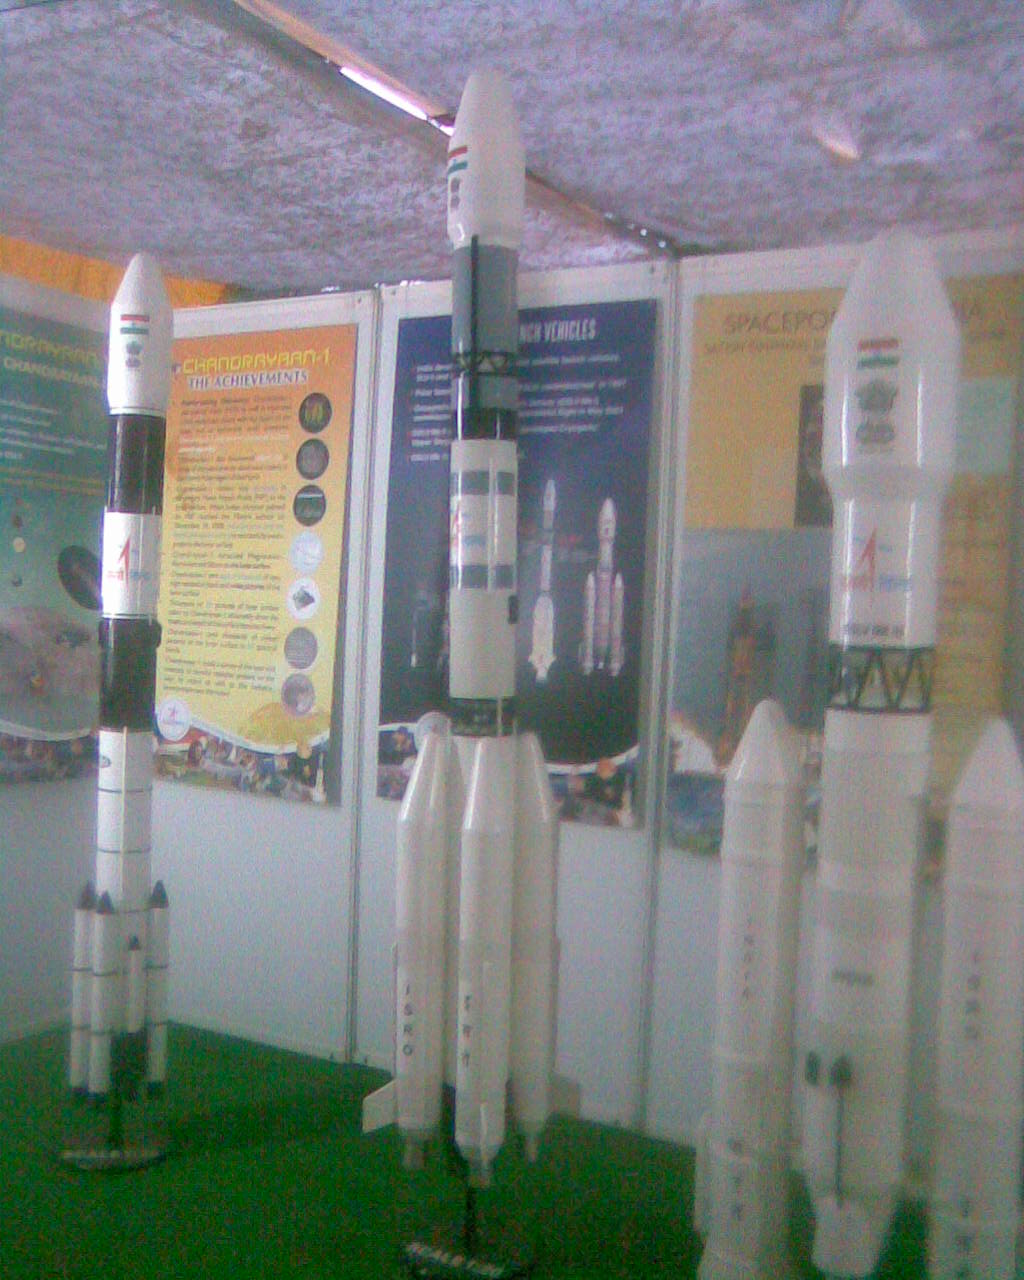 MOBILE WALLPAPERS IMAGES: Science Exhibition In Tirupati